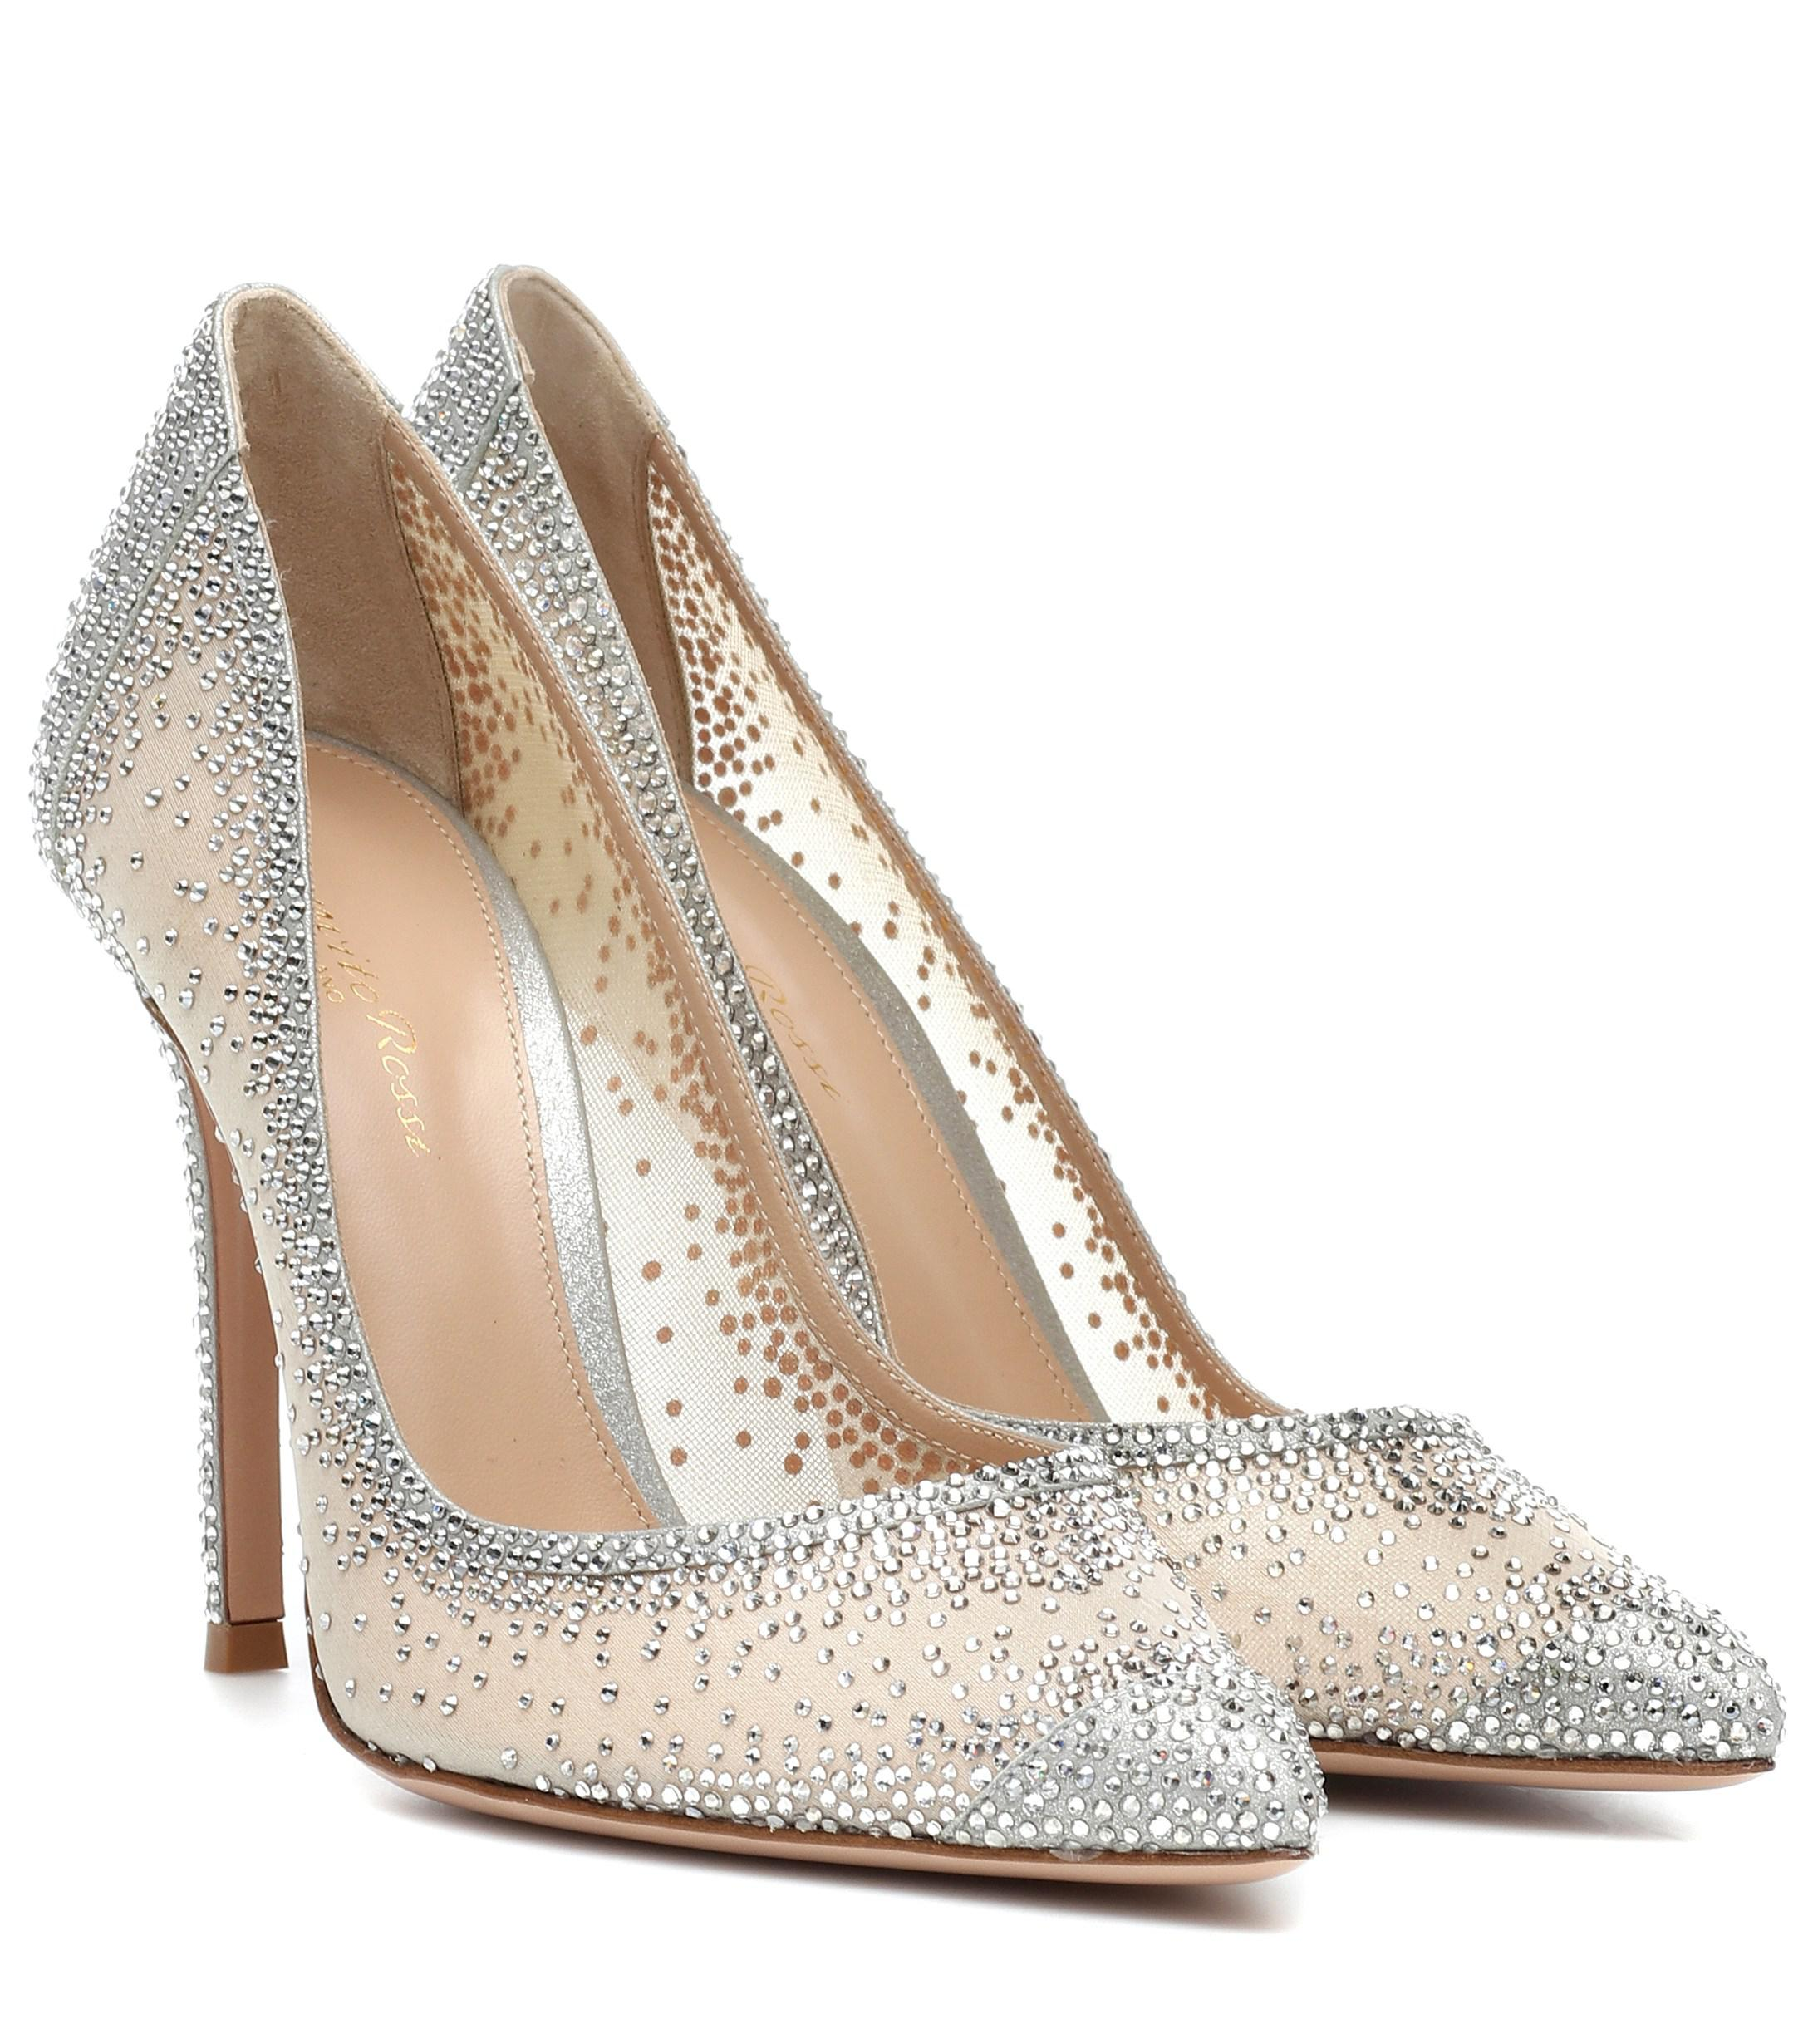 dcd44b72cc42 Gianvito Rossi. Women s Rania 105 Crystal-embellished Pumps